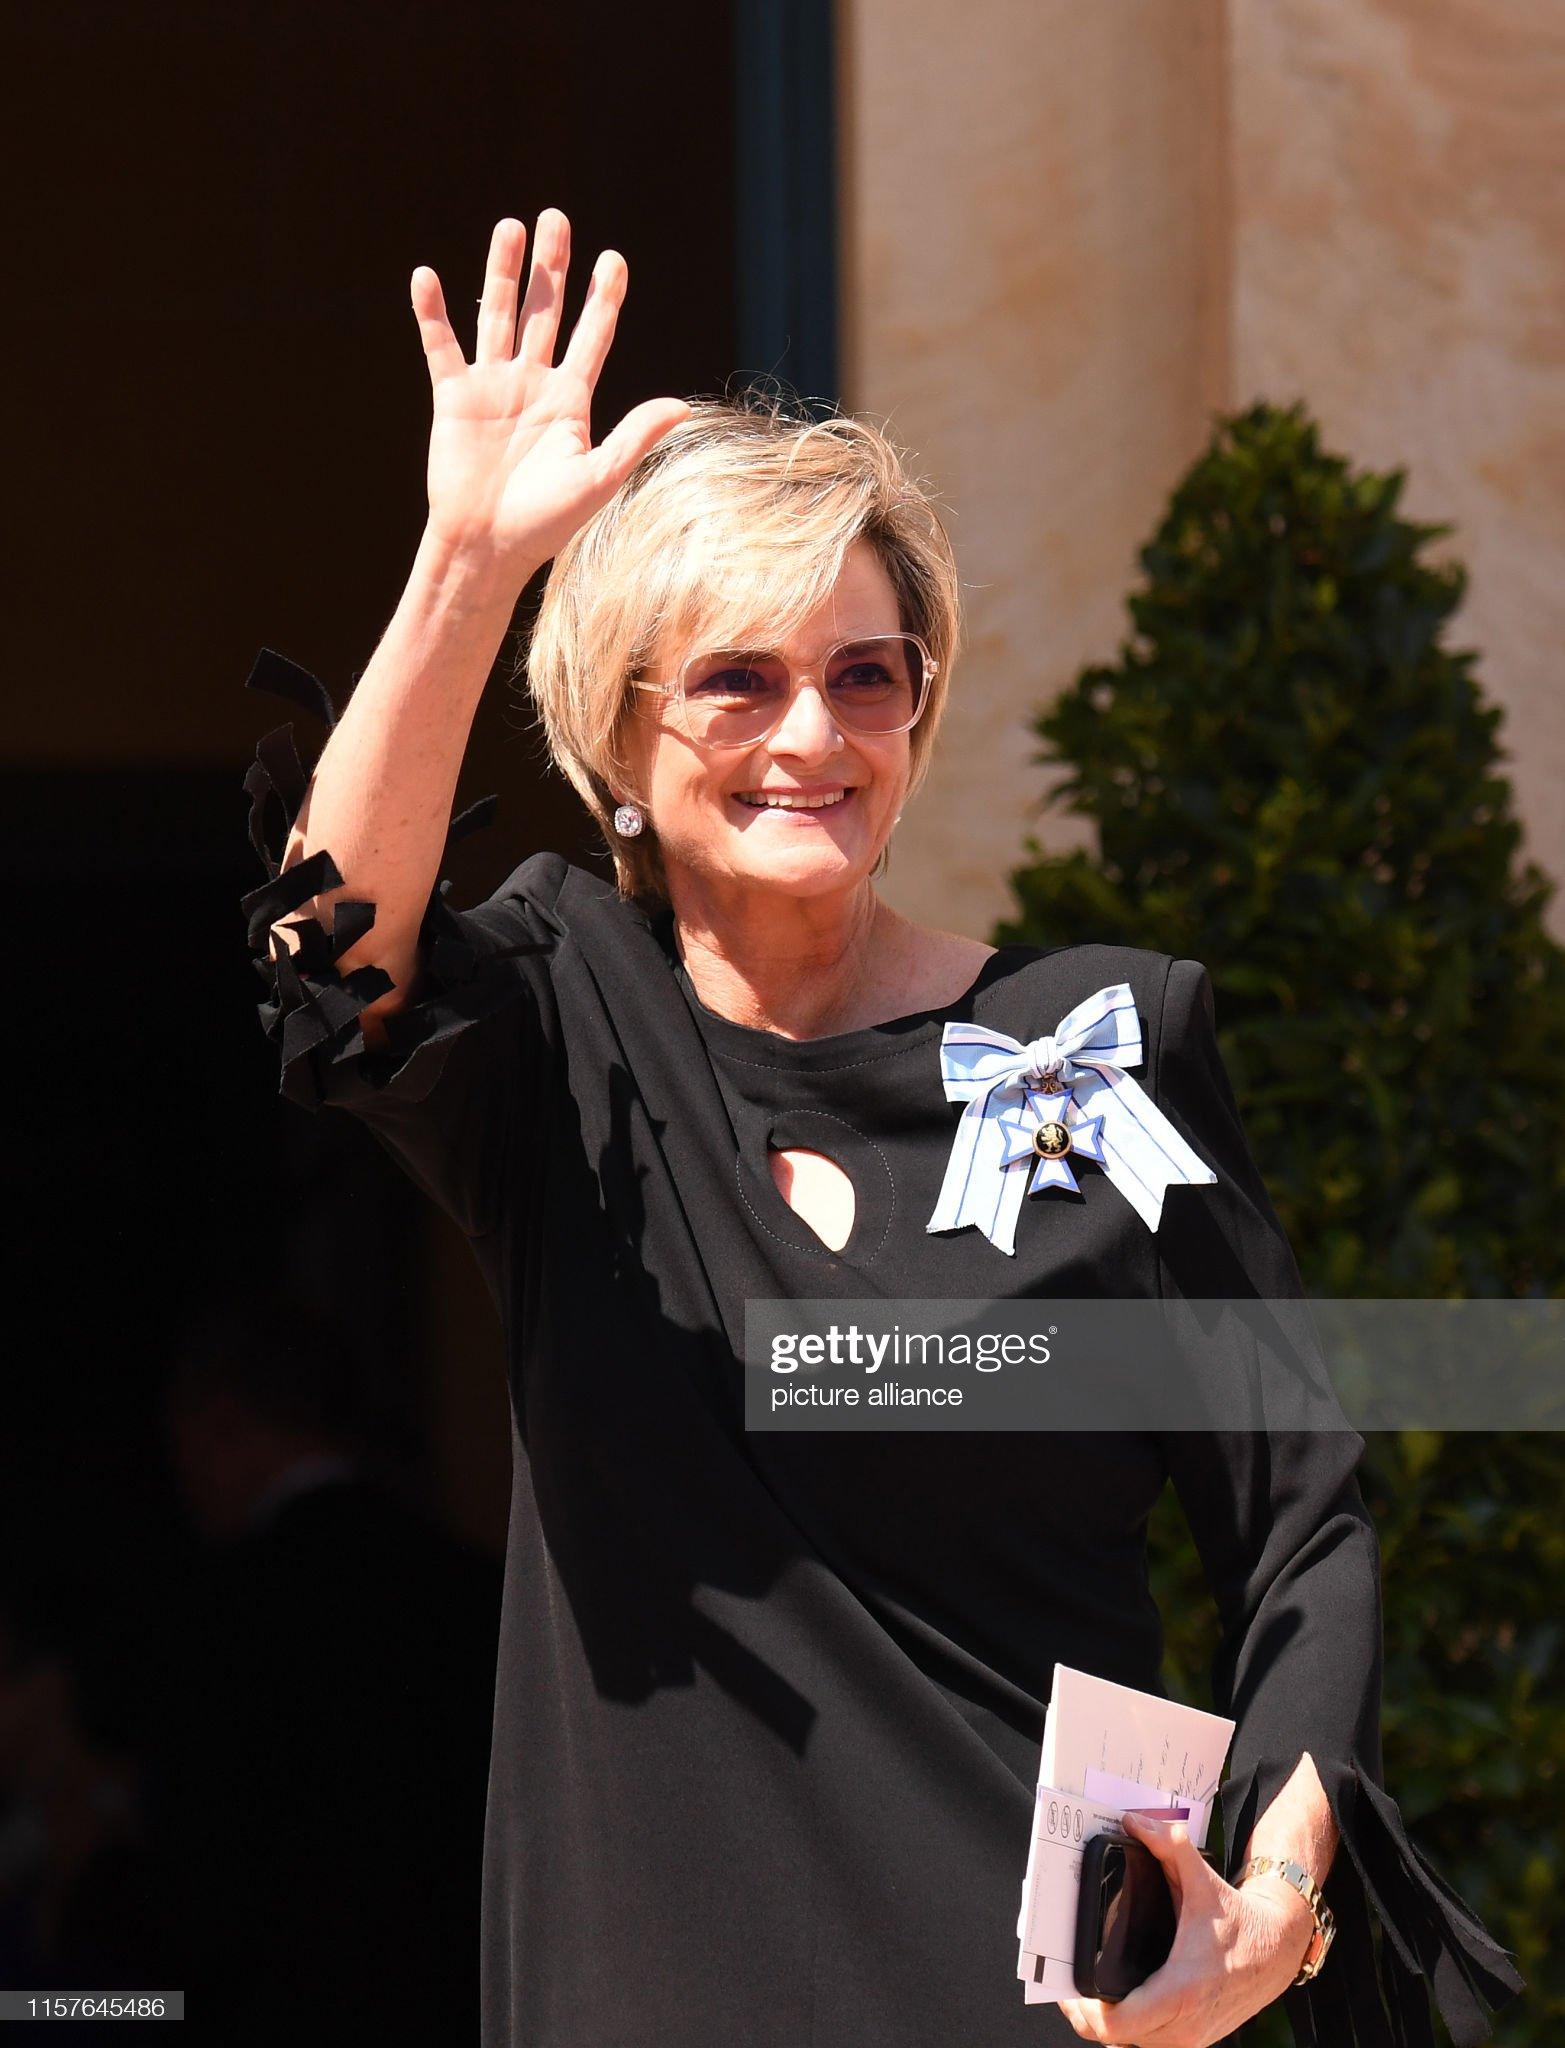 https://media.gettyimages.com/photos/july-2019-bavaria-bayreuth-gloria-von-thurn-und-taxis-comes-to-the-picture-id1157645486?s=2048x2048